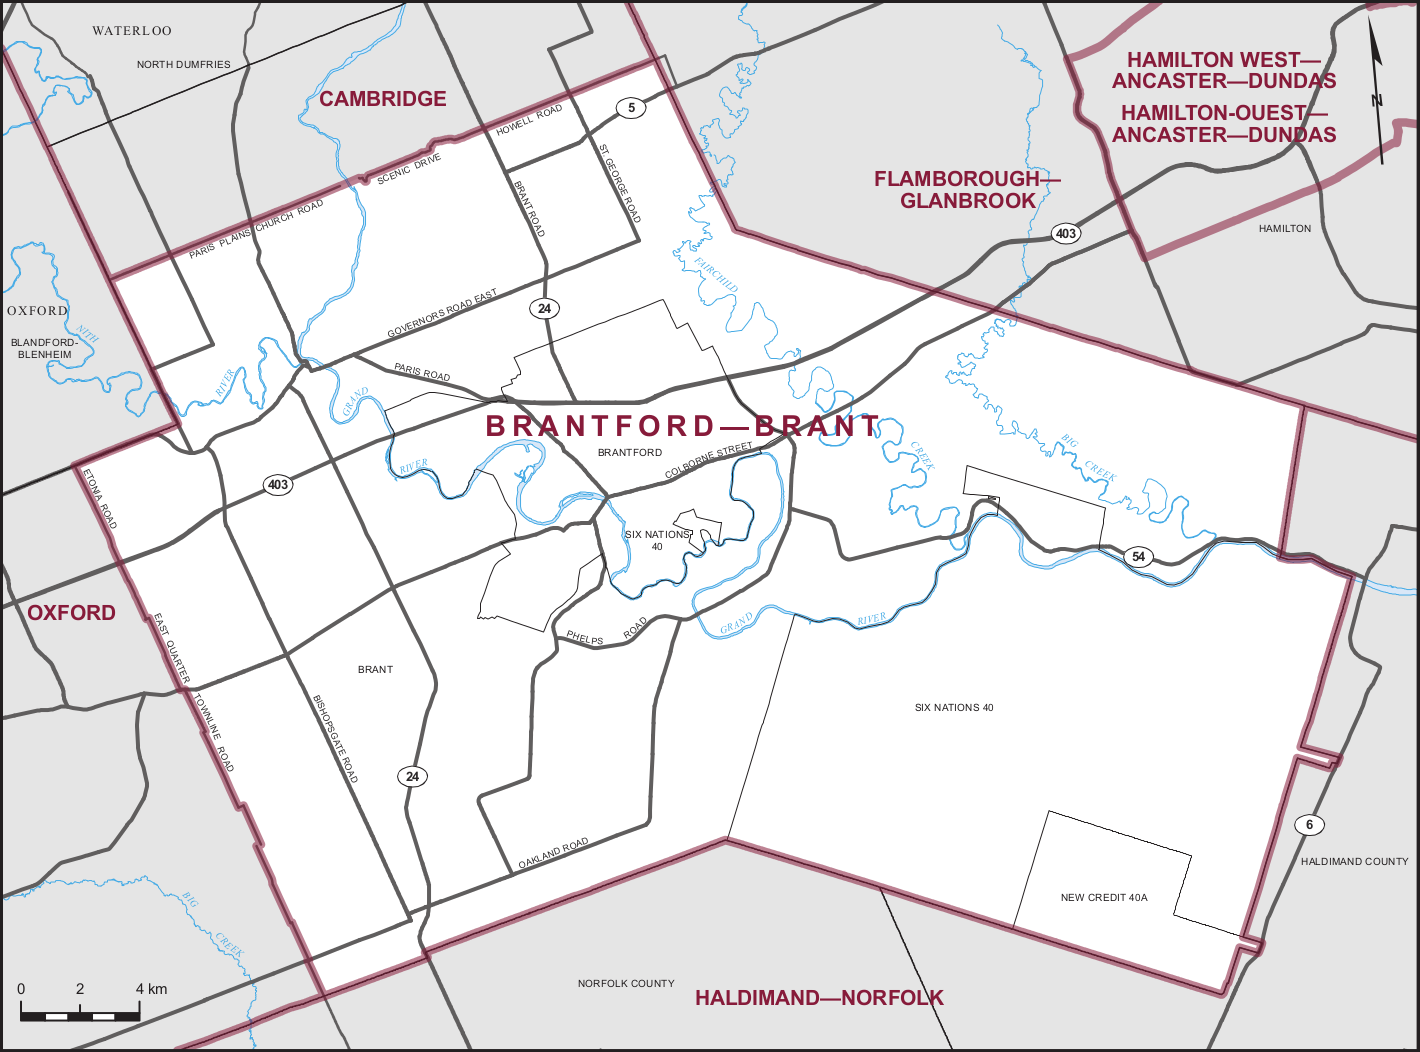 Map of the Brantford-Brant electoral district